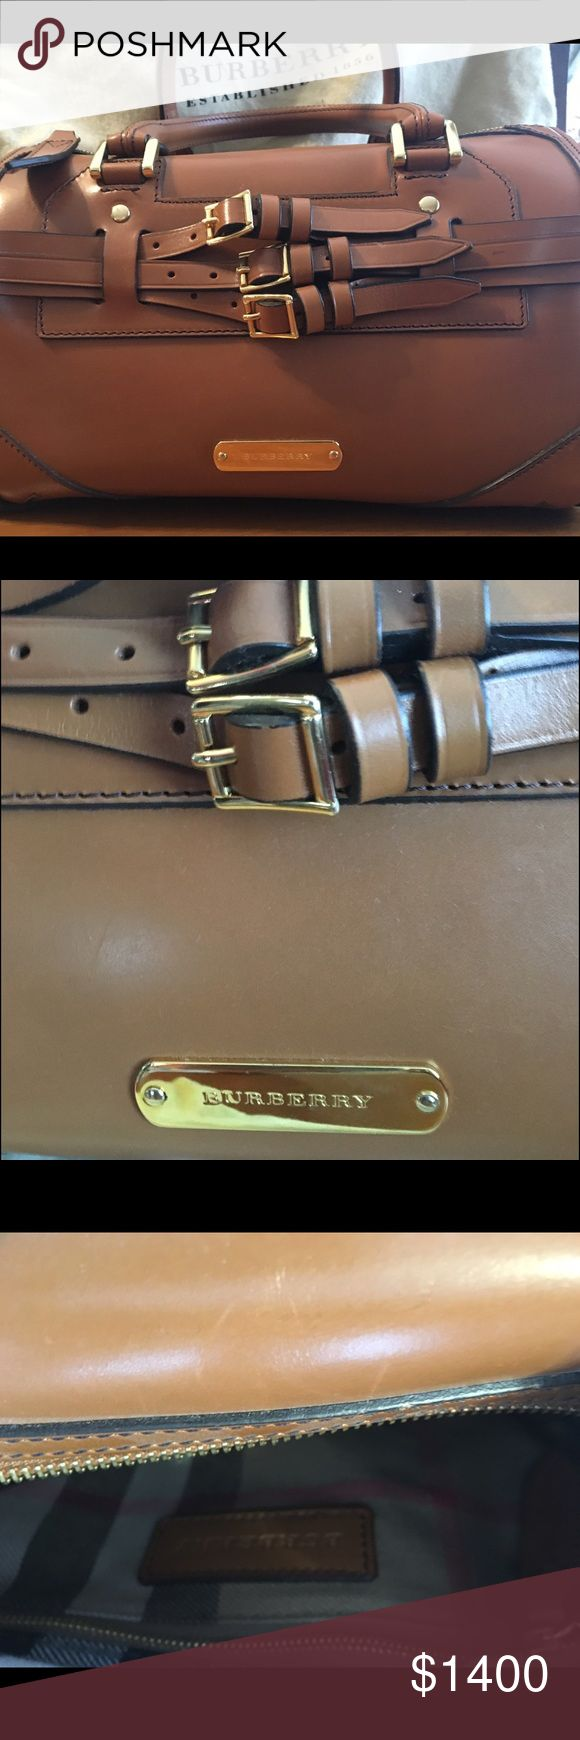 Burberry leather buckle bag Pristine condition Burberry leather bag. 3 buckles enhance the look of this beautiful bag. Interior plaid lining with one zipper pocket and 2 pouch pockets. Includes removable strap and dust bag. Burberry Bags Satchels